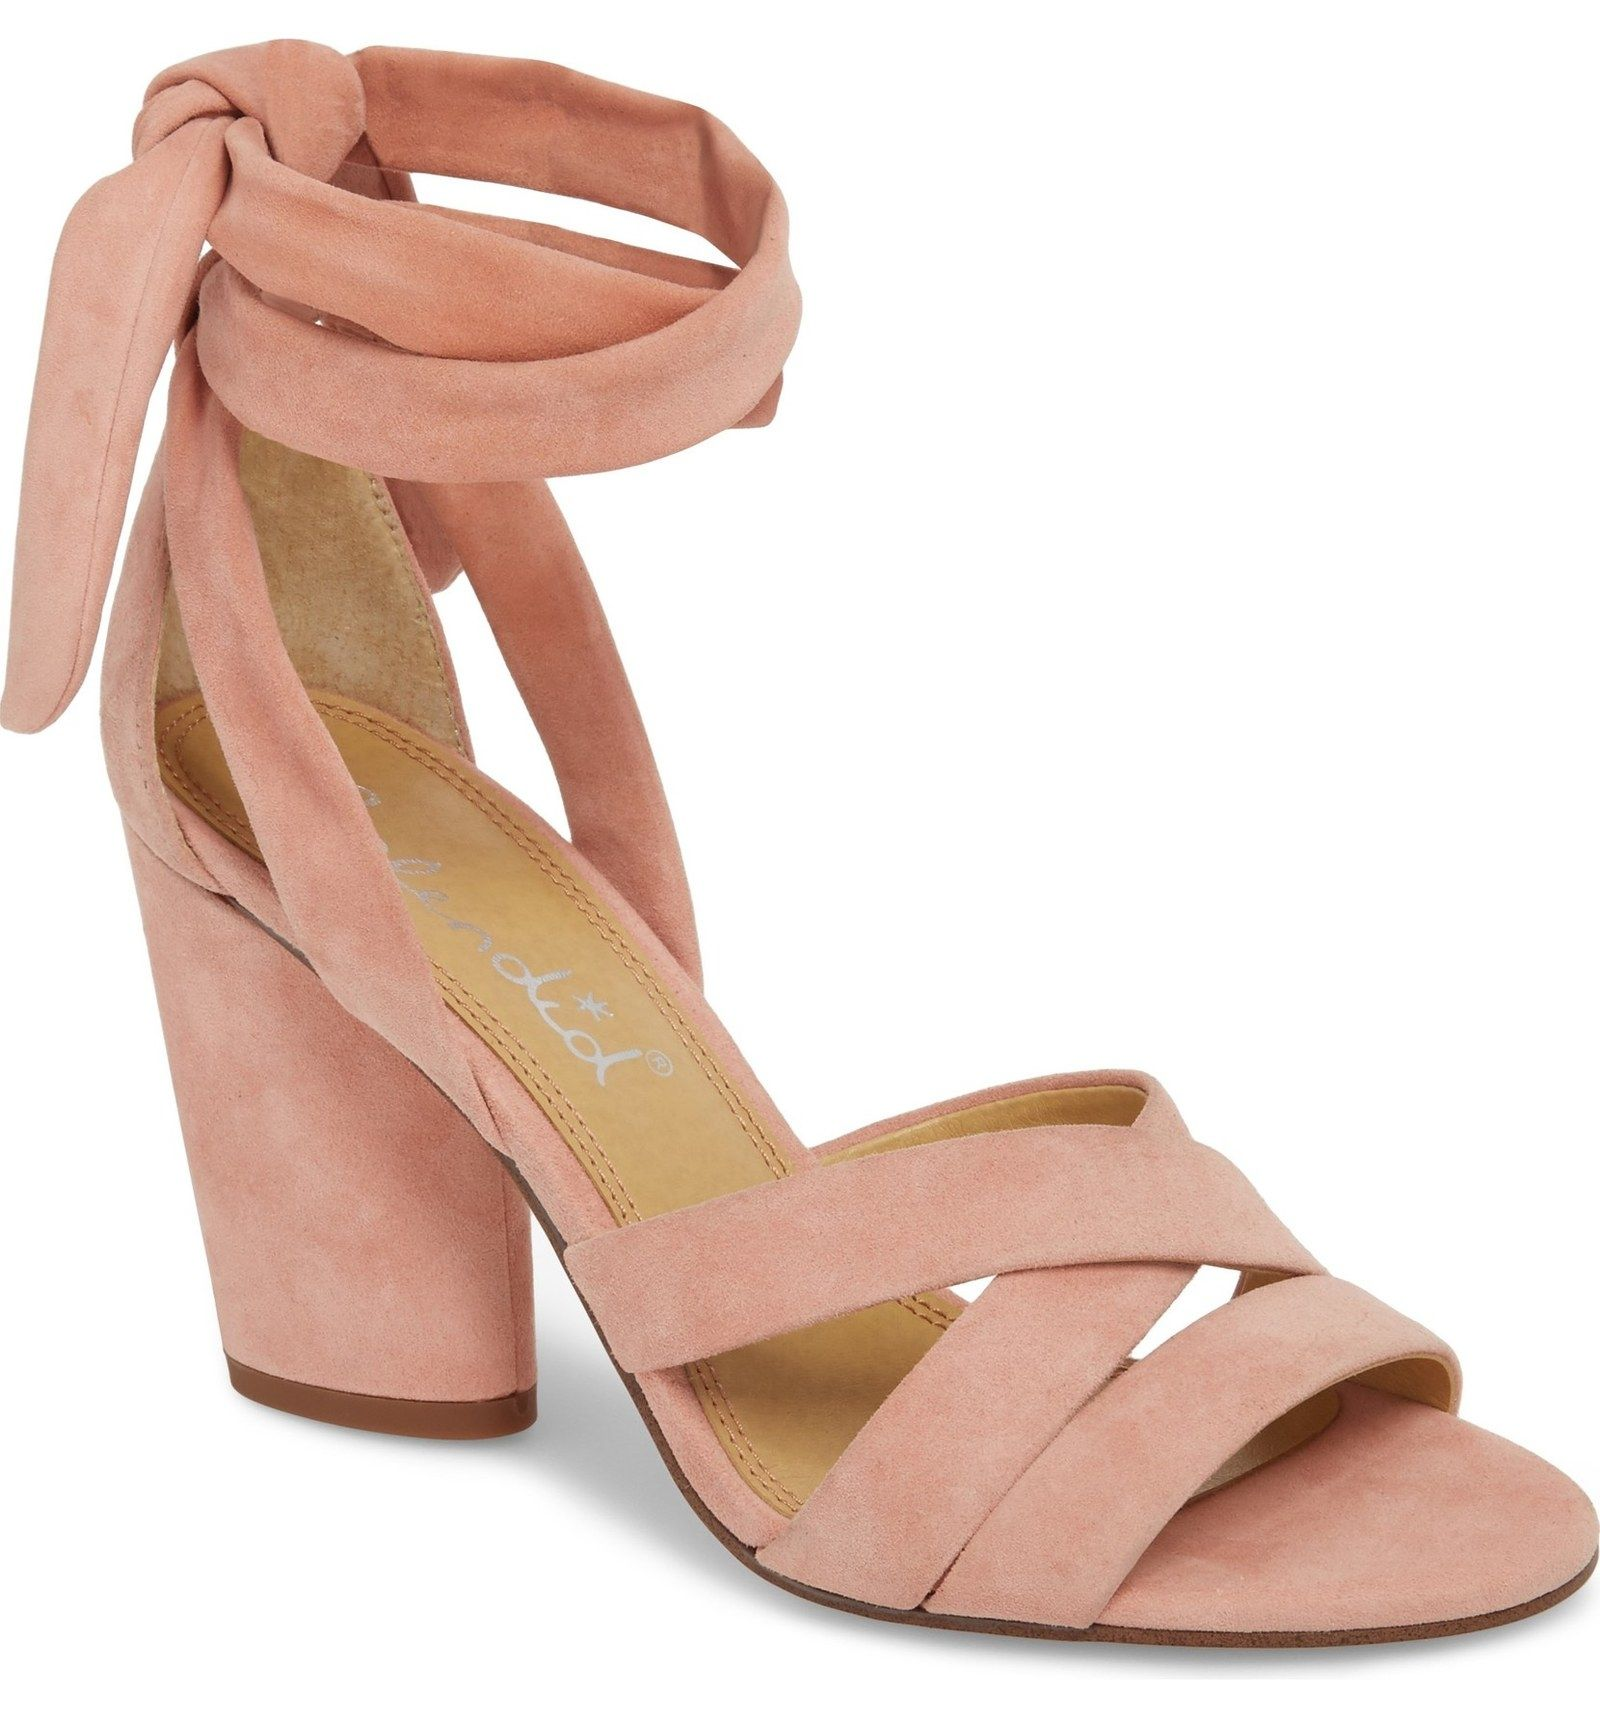 27 Comfy Pairs Of Heeled Sandals You